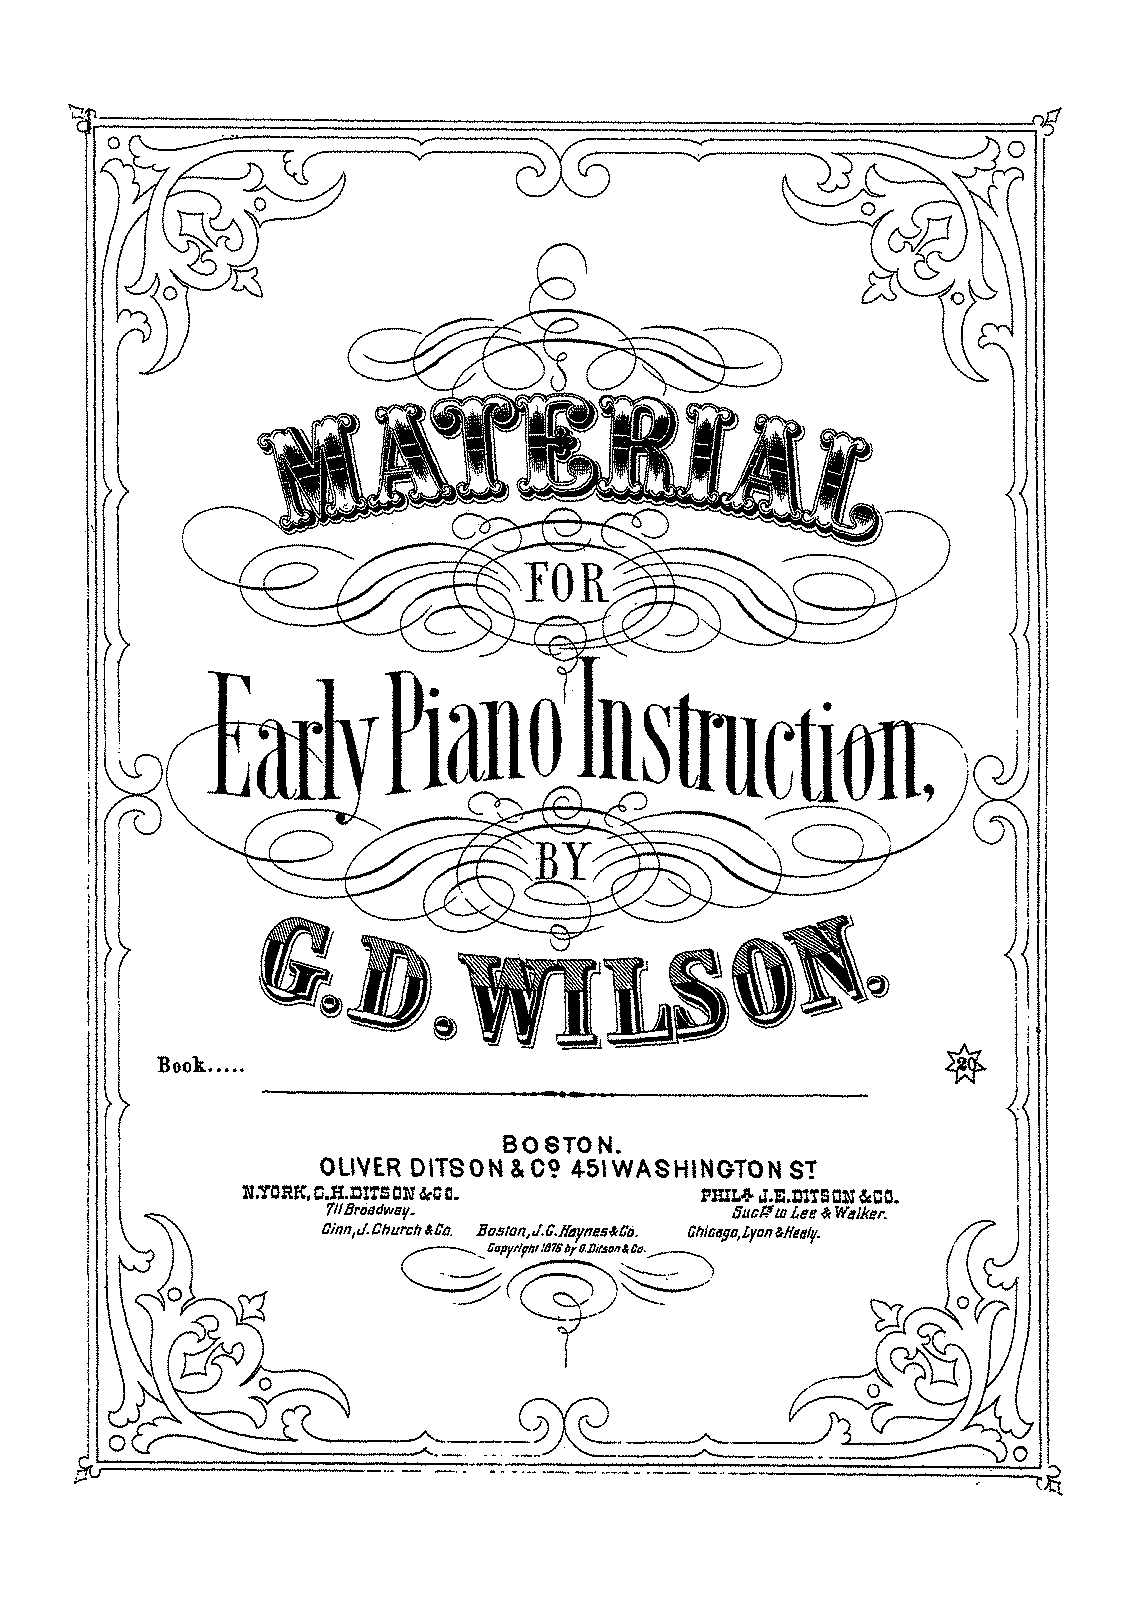 PMLP167020-GD Wilson-Early Piano Instr Bk1.pdf